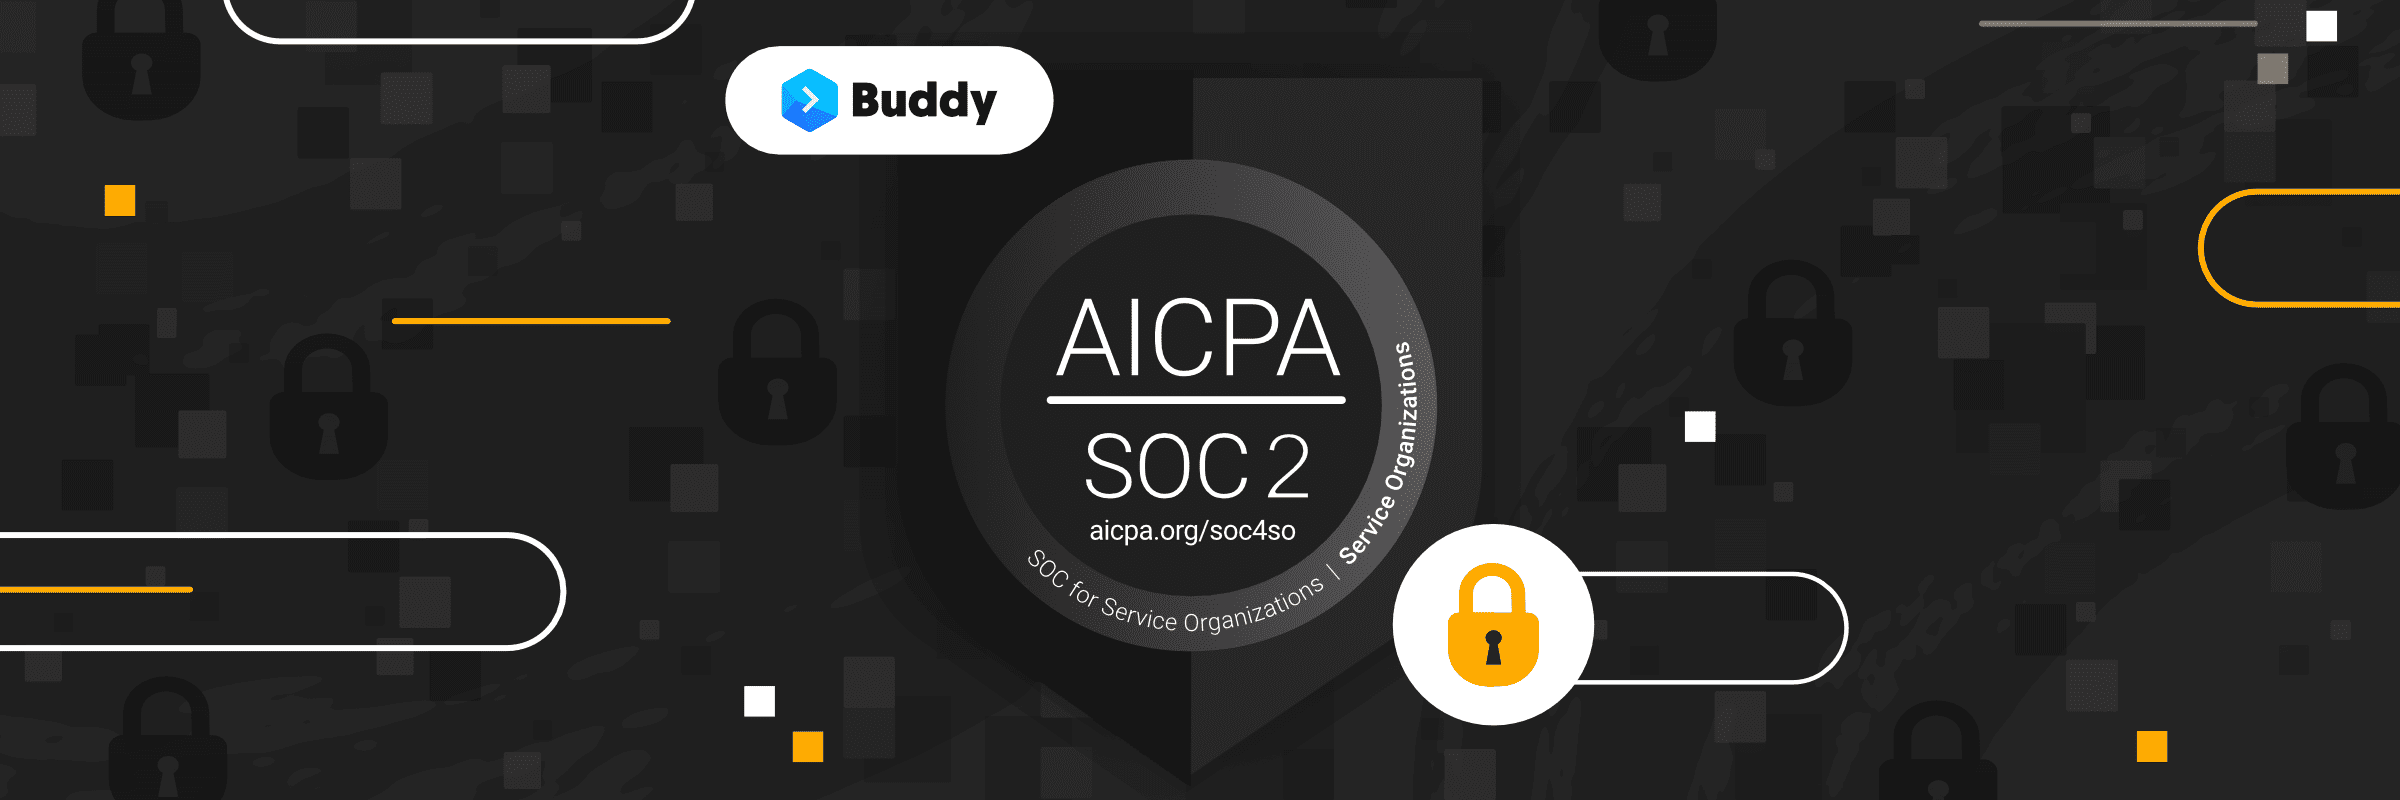 In Buddy we trust: Announcing SOC 2 certification